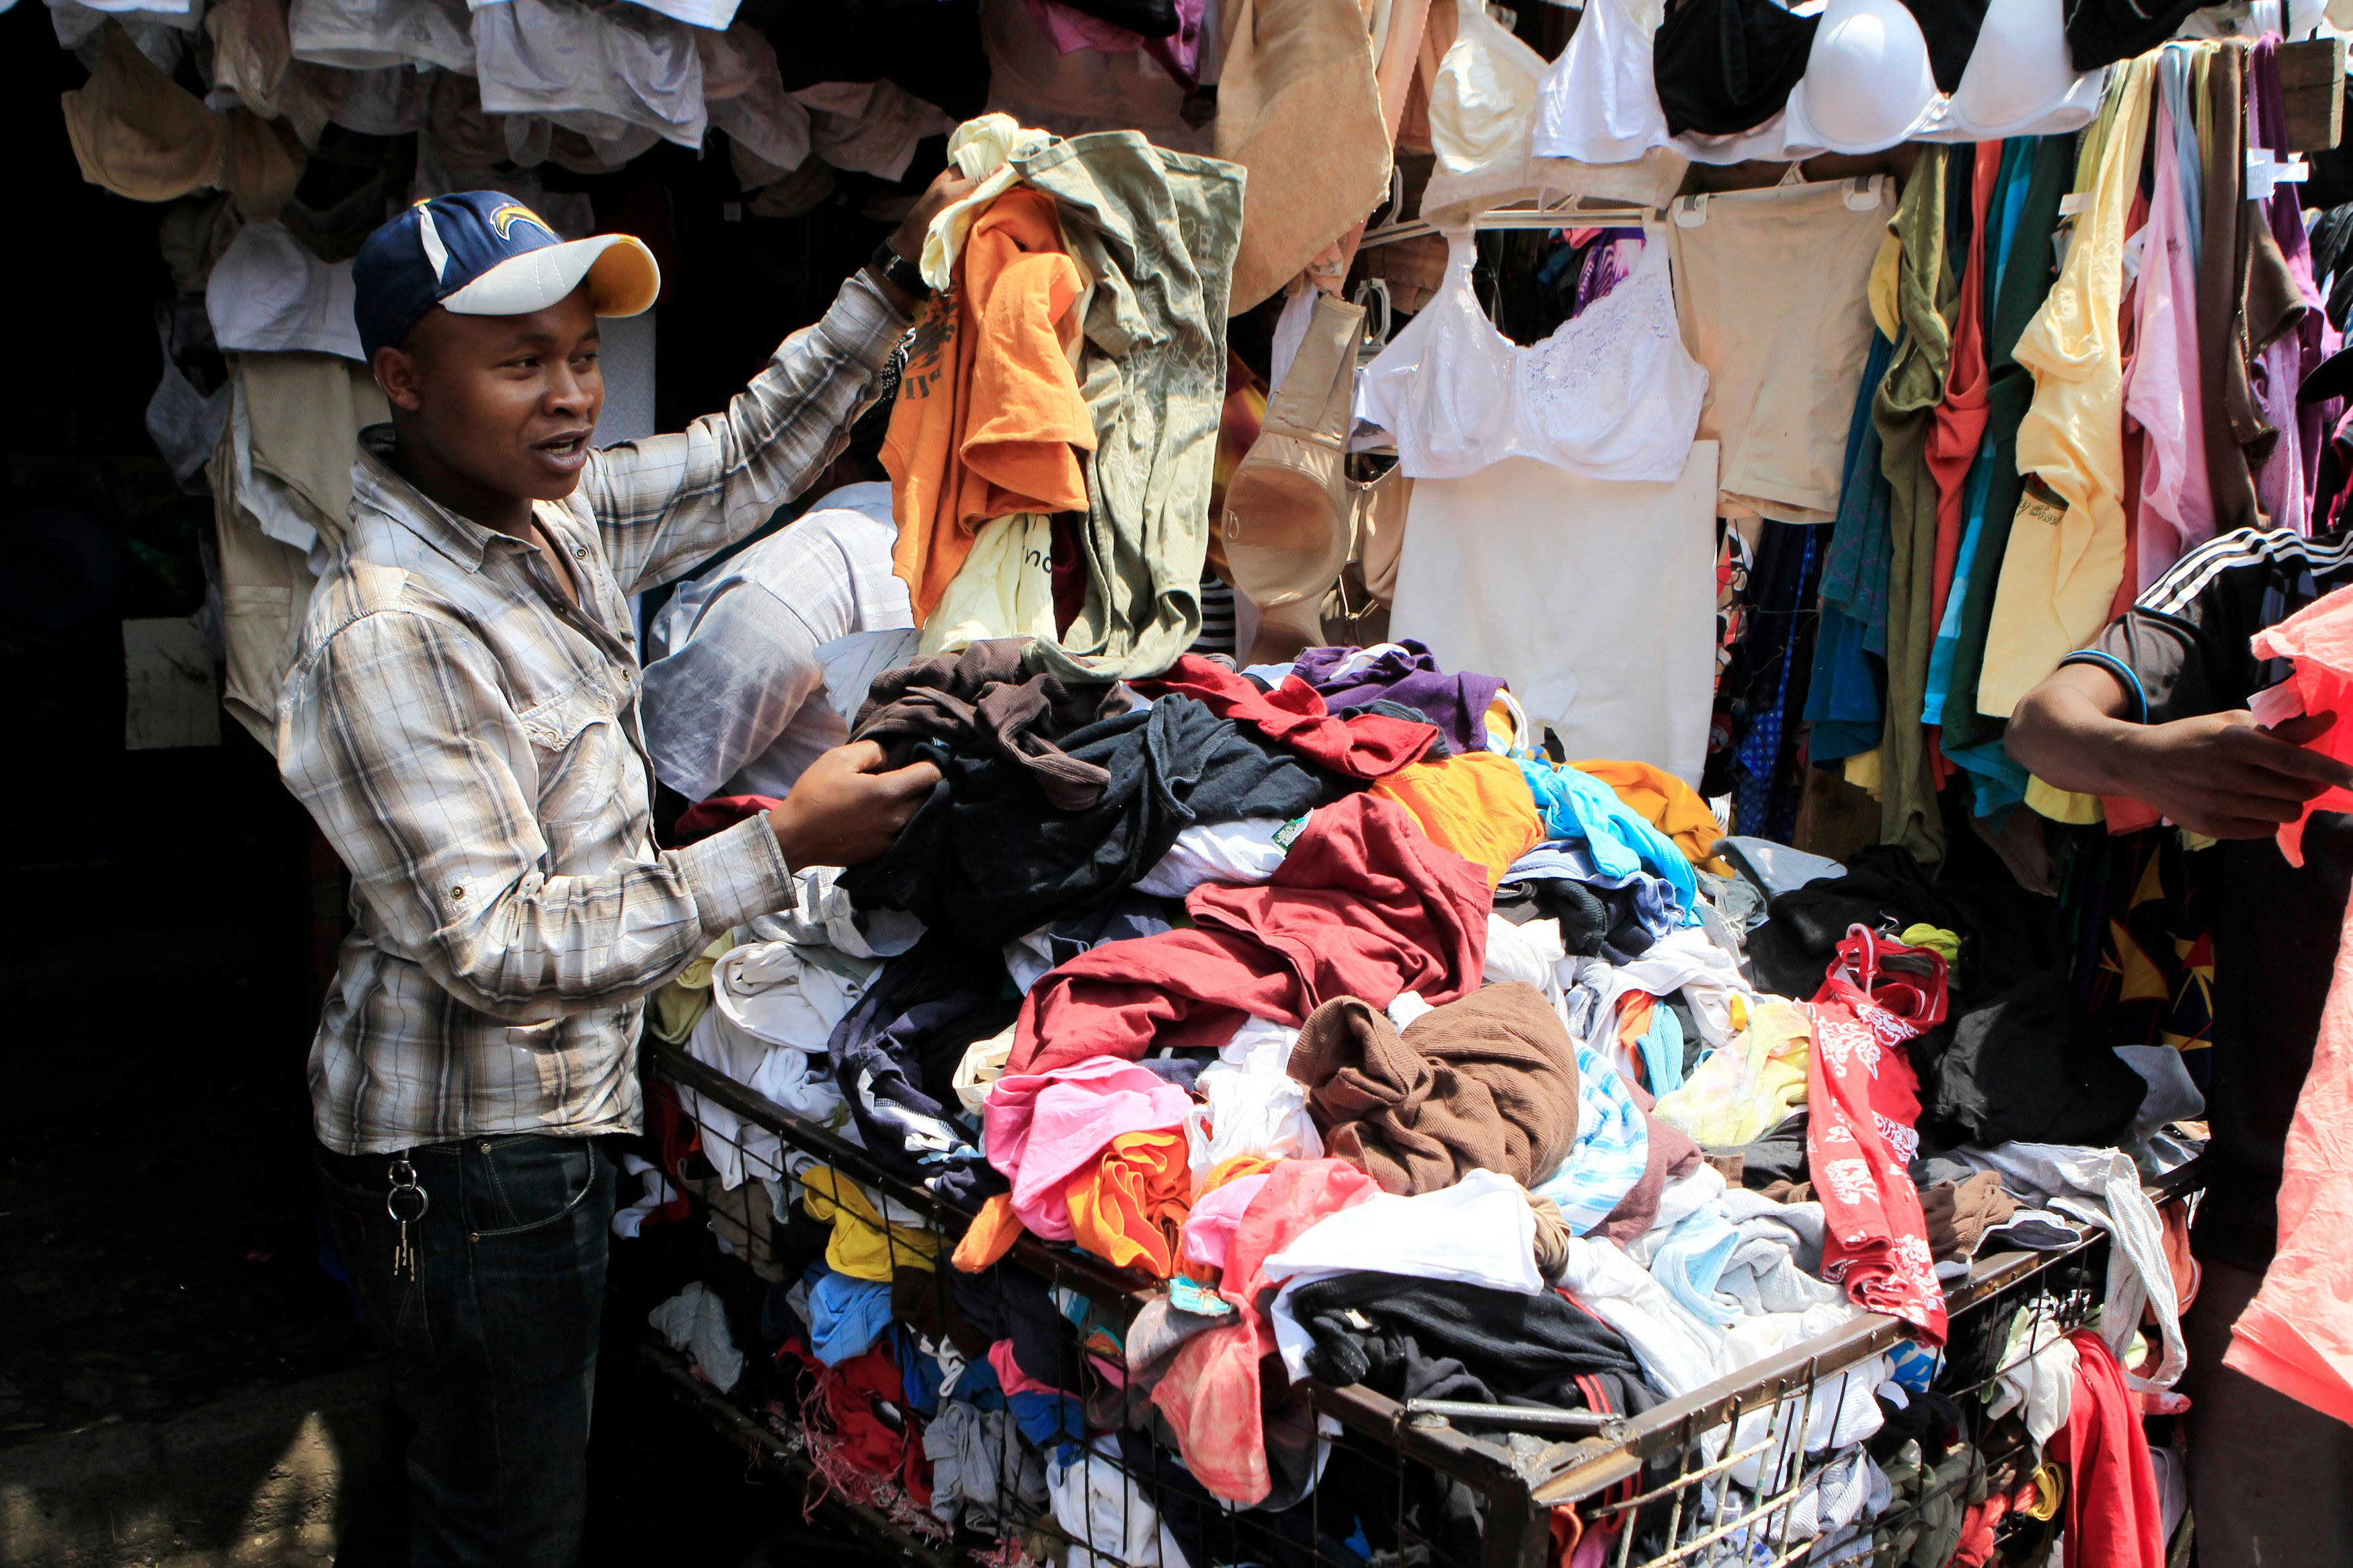 A vendor sells secondhand cloths at a stall in the busy Gikomba market in Nairobi, Kenya, Sept. 18, 2014. Shaded by ragged sq